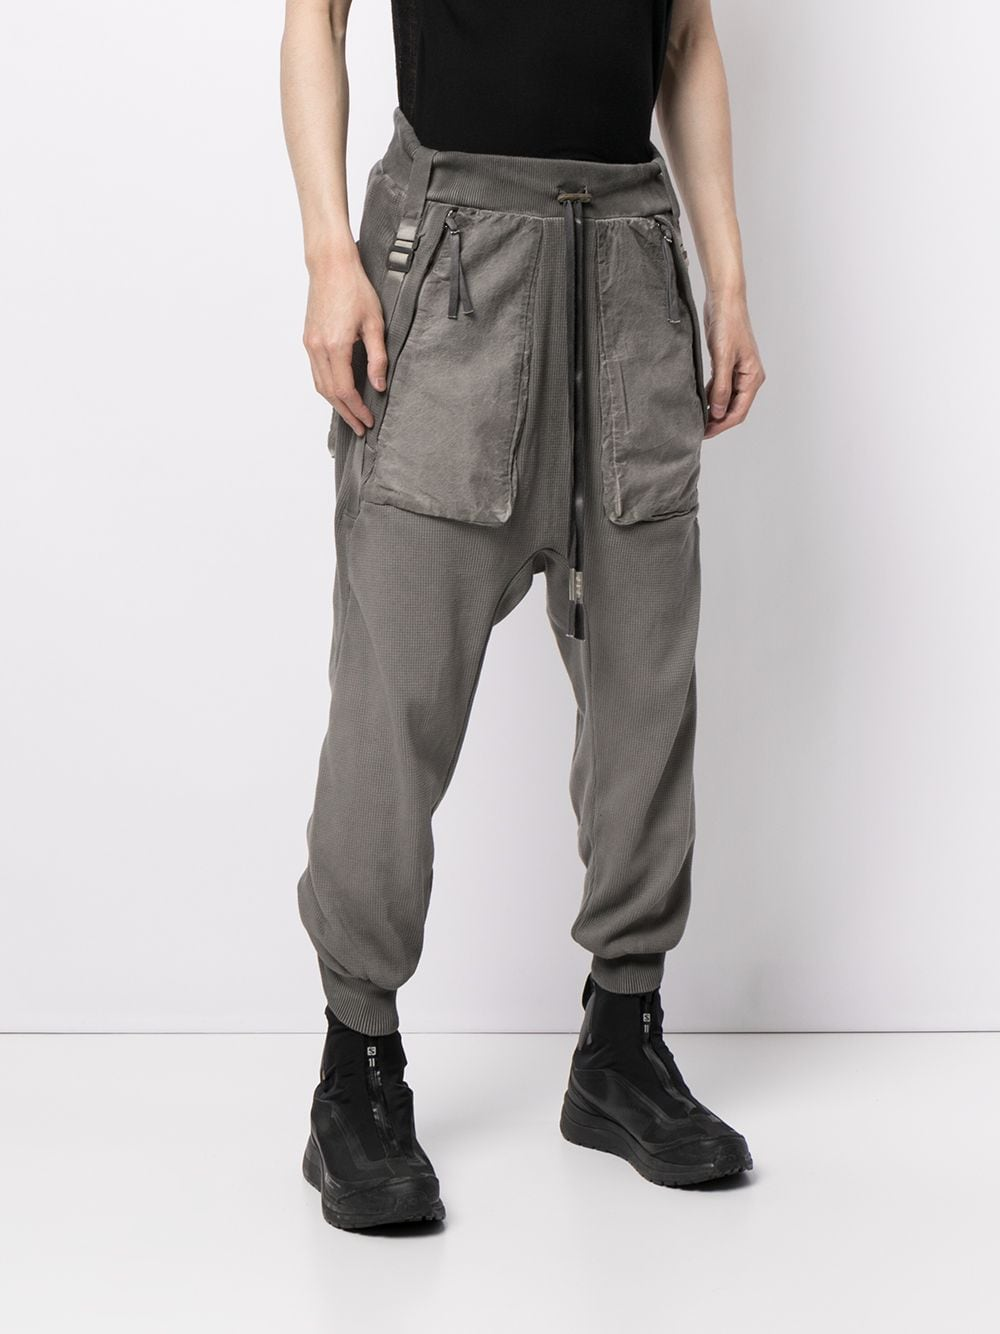 BORIS BIDJAN SABERI MEN P18.1 RESIN DYED PANTS